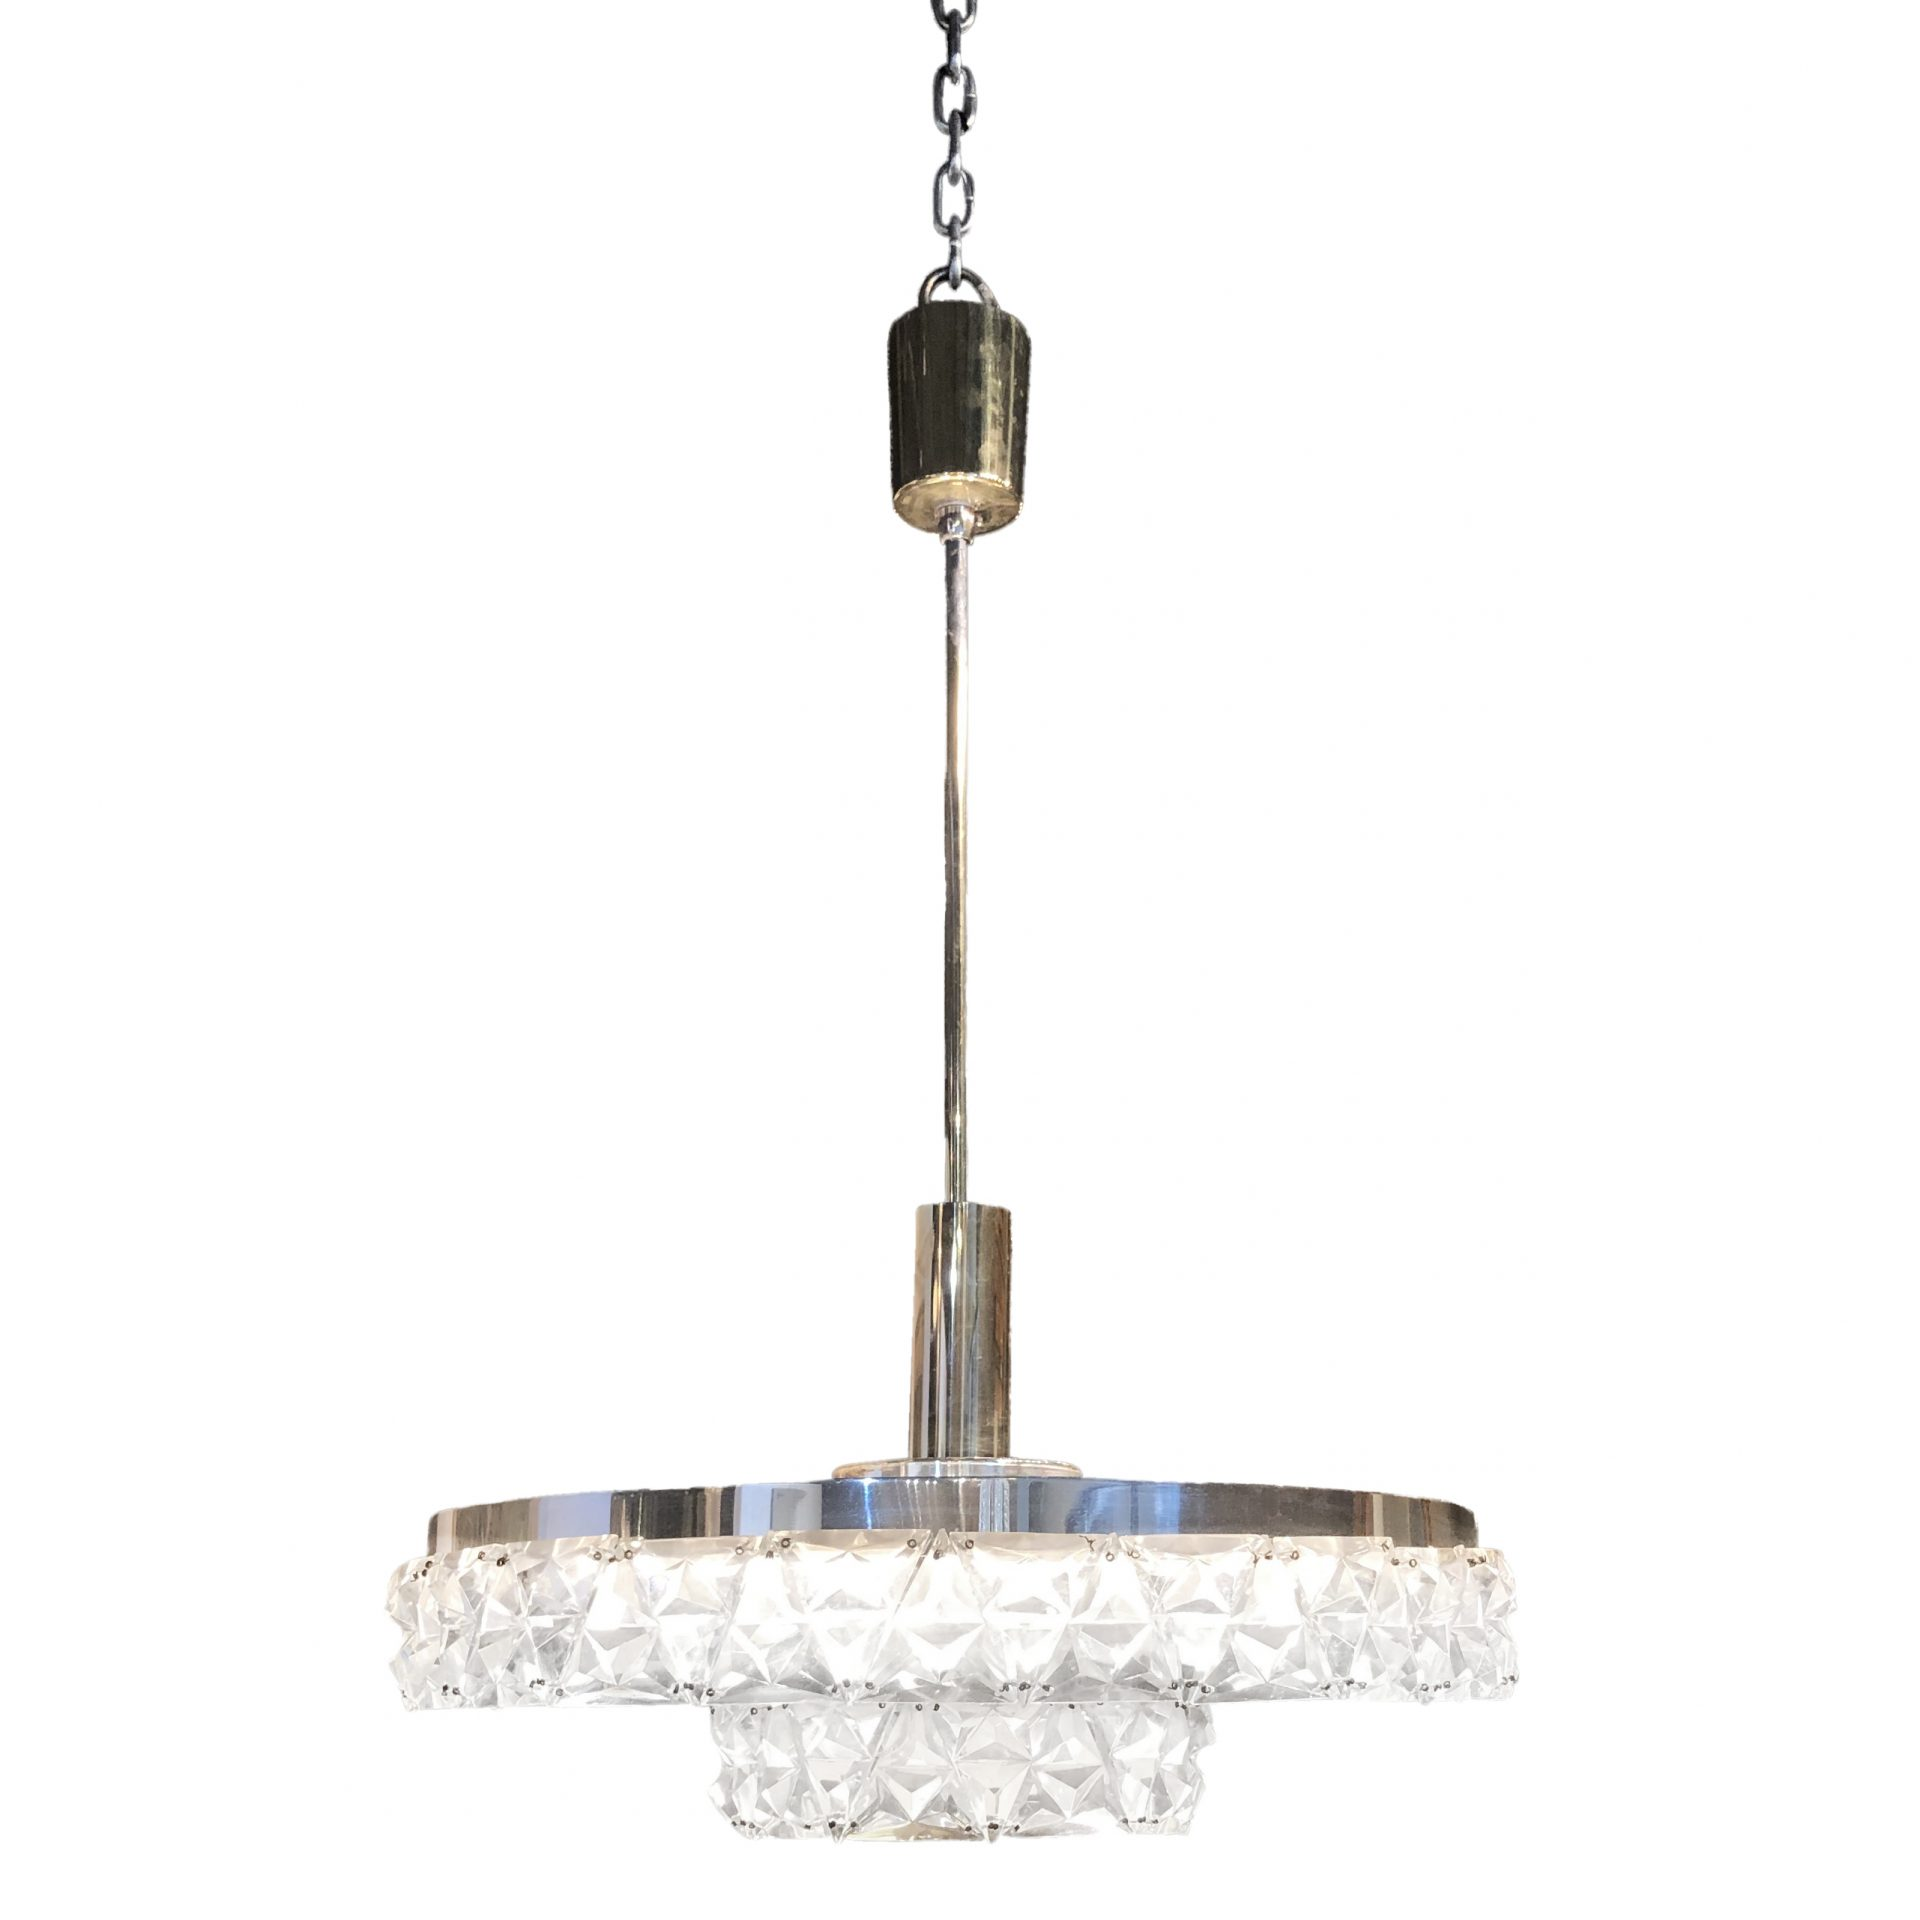 20th Century Orrefors Ceiling Lamp – Swedish Chandelier by Carl Fagerlund